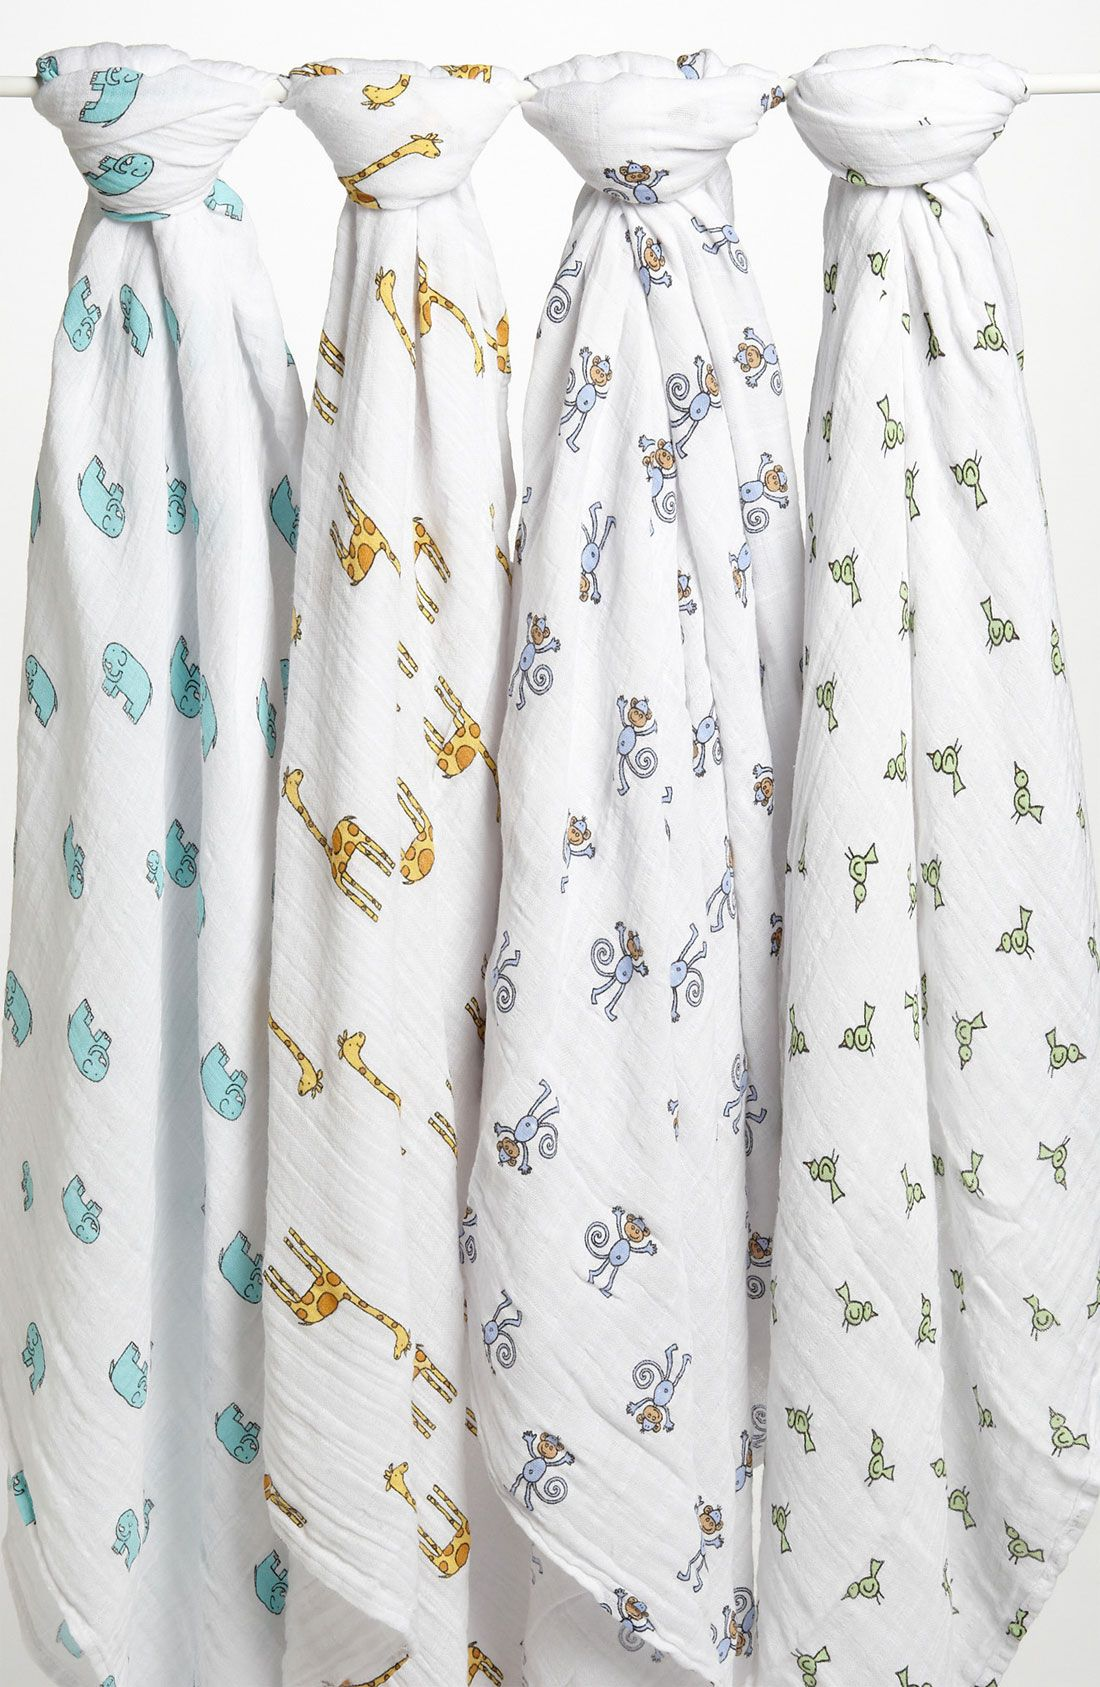 Aden And Anais Swaddle Blankets Aden  Anais Classic Swaddling Cloths 4Pack  Baby  Pinterest